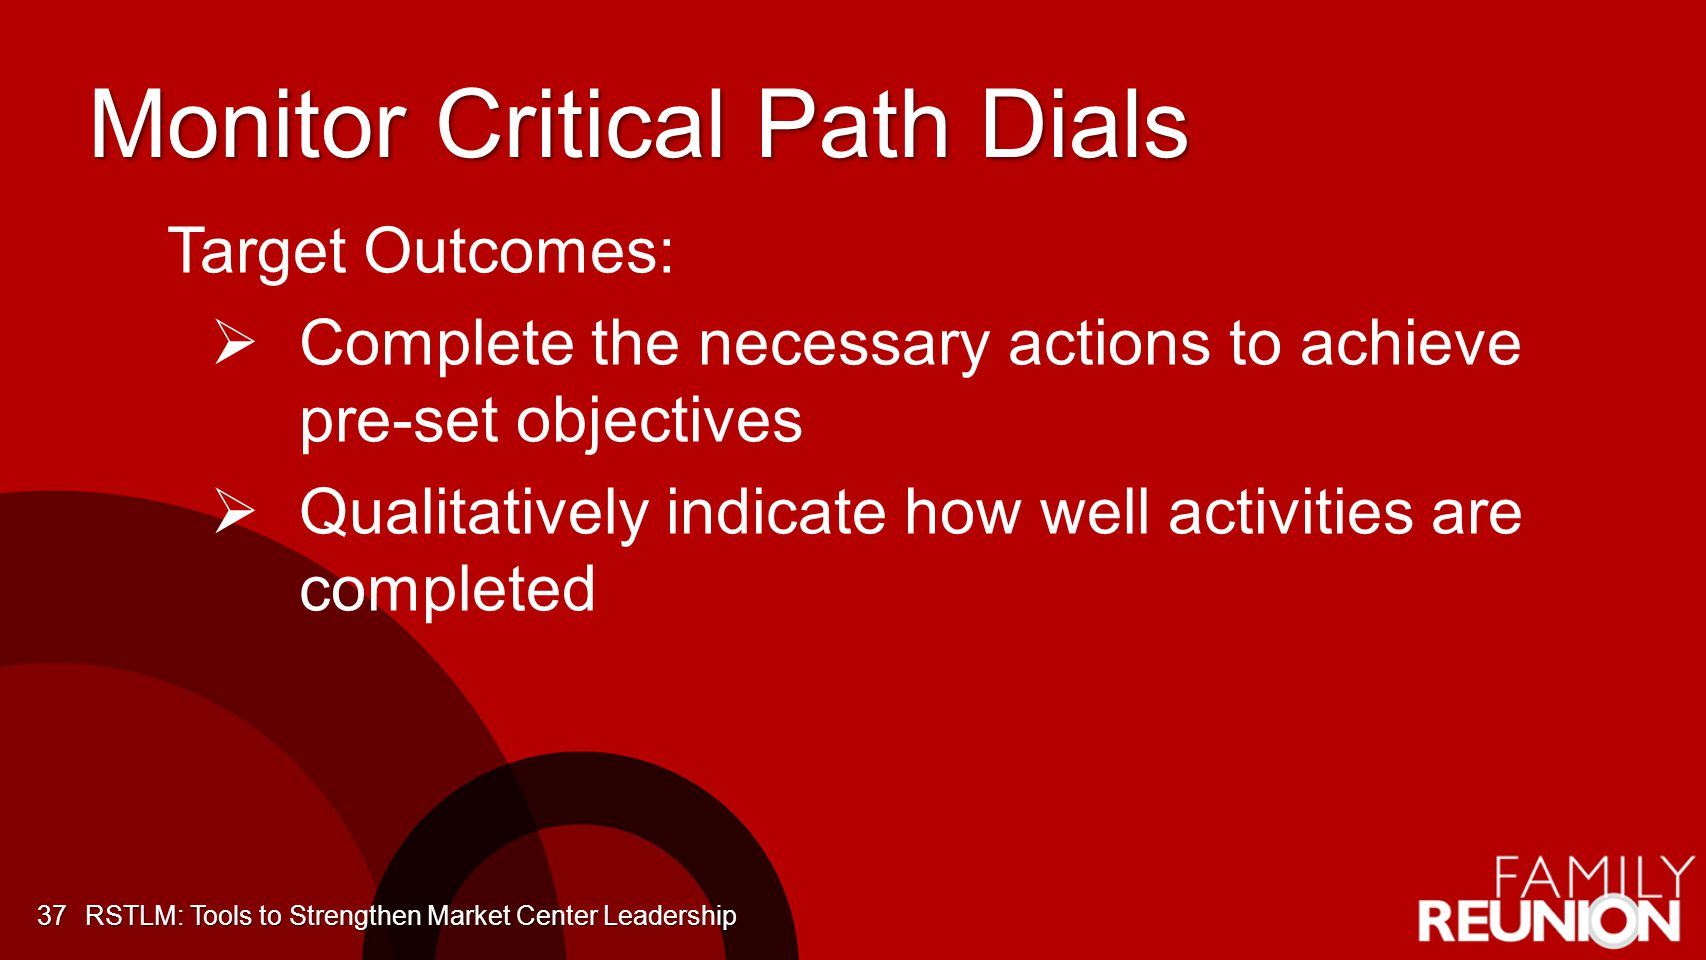 Monitor Critical Path Dials 37 Target Outcomes: Complete the necessary actions to achieve pre-set objectives Qualitatively indicate how well activities are completed RSTLM: Tools to Strengthen Market Center Leadership